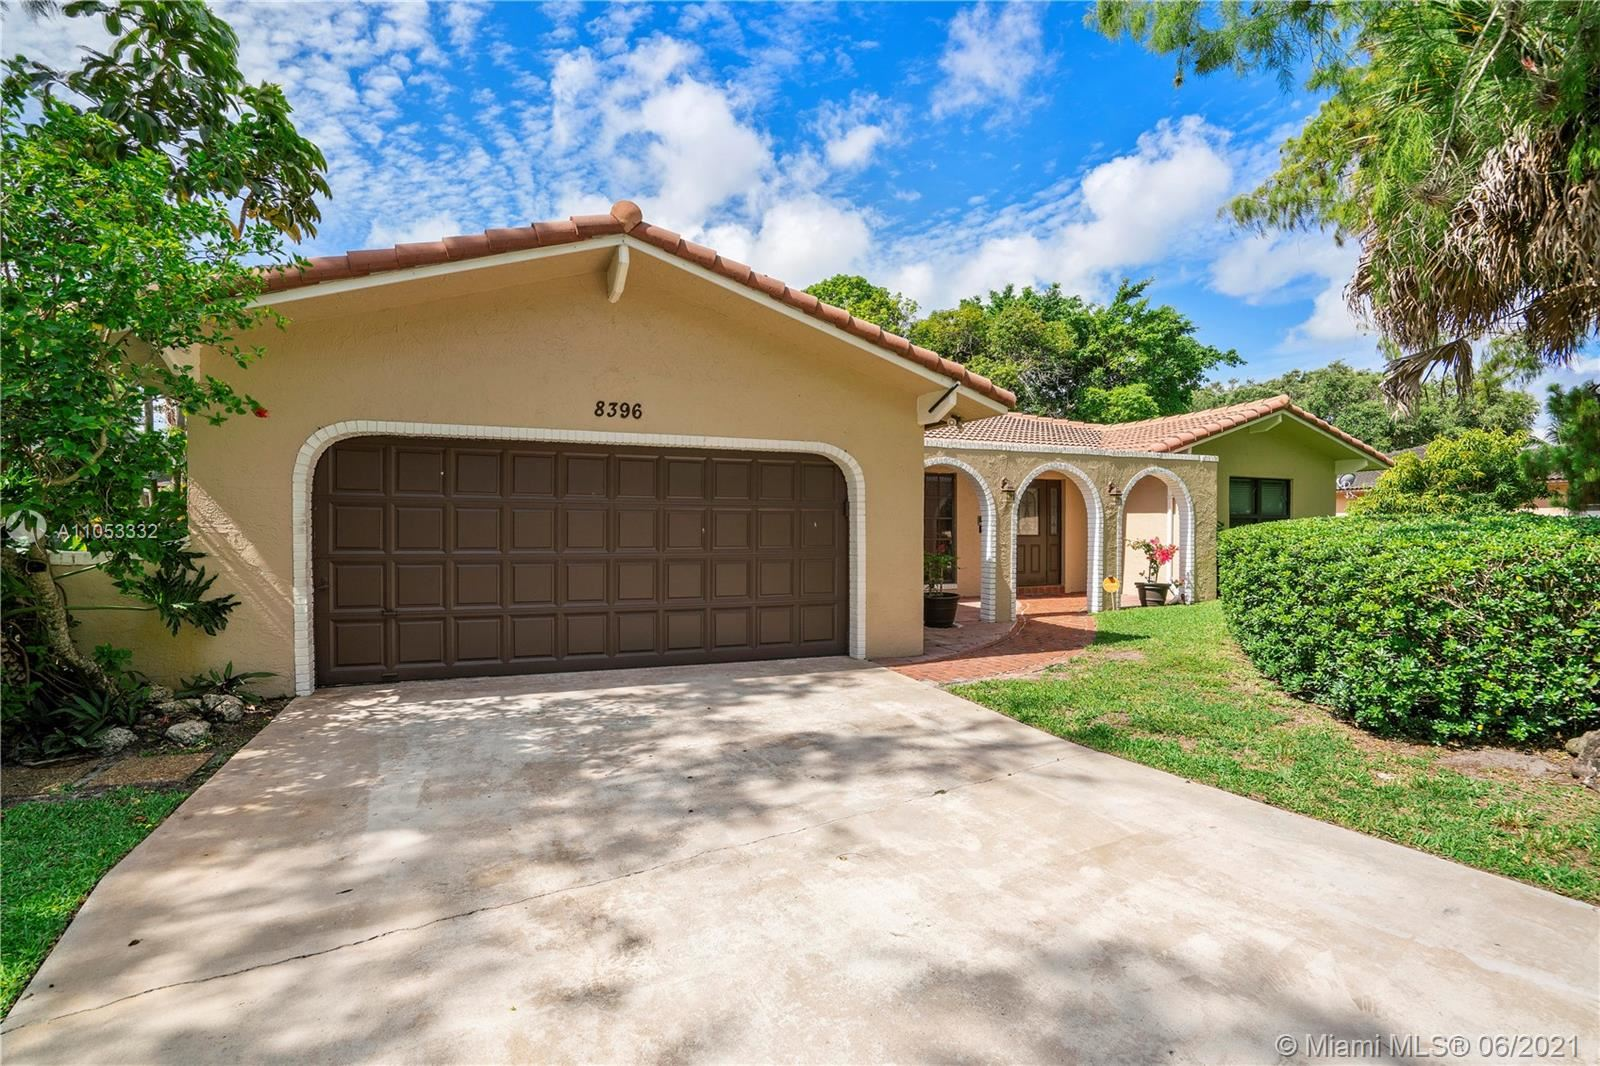 8396 NW 14th Ct, Coral Springs, FL 33071 - #: A11053332